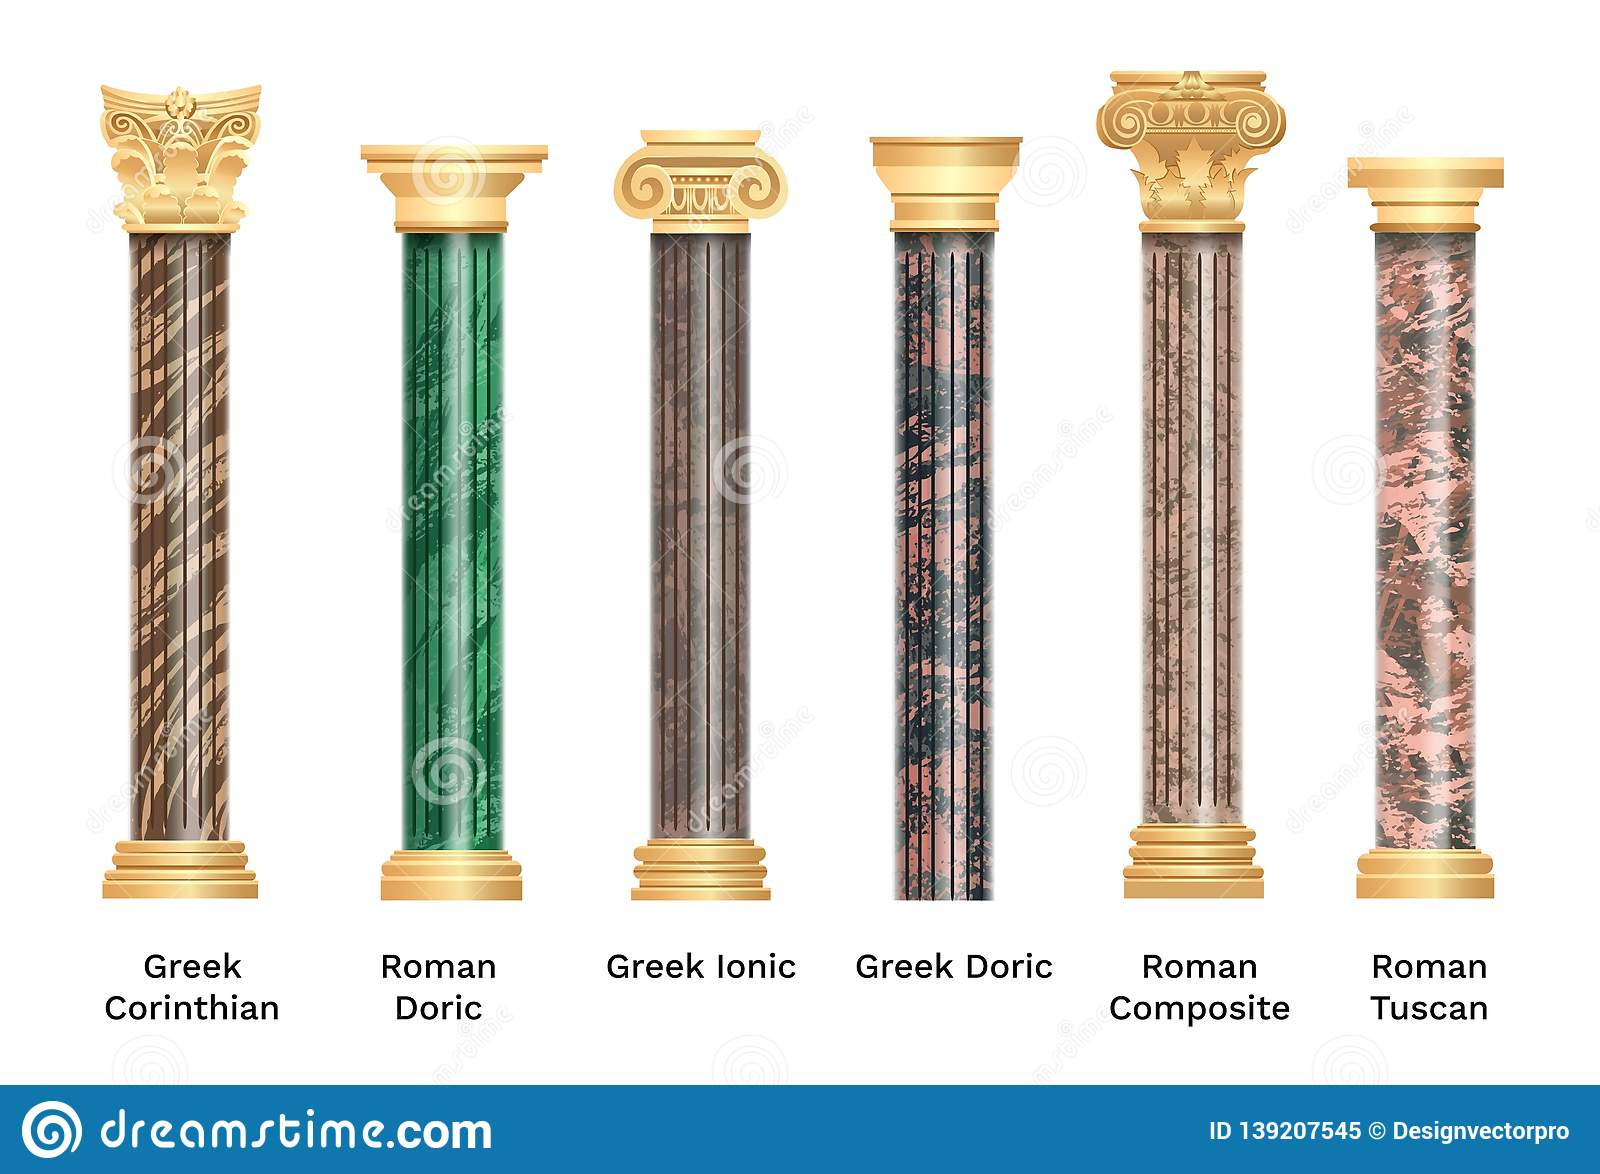 Realistic ancient pillars set isolated on white background. Different architecture pillars with stone effect. Classical columns